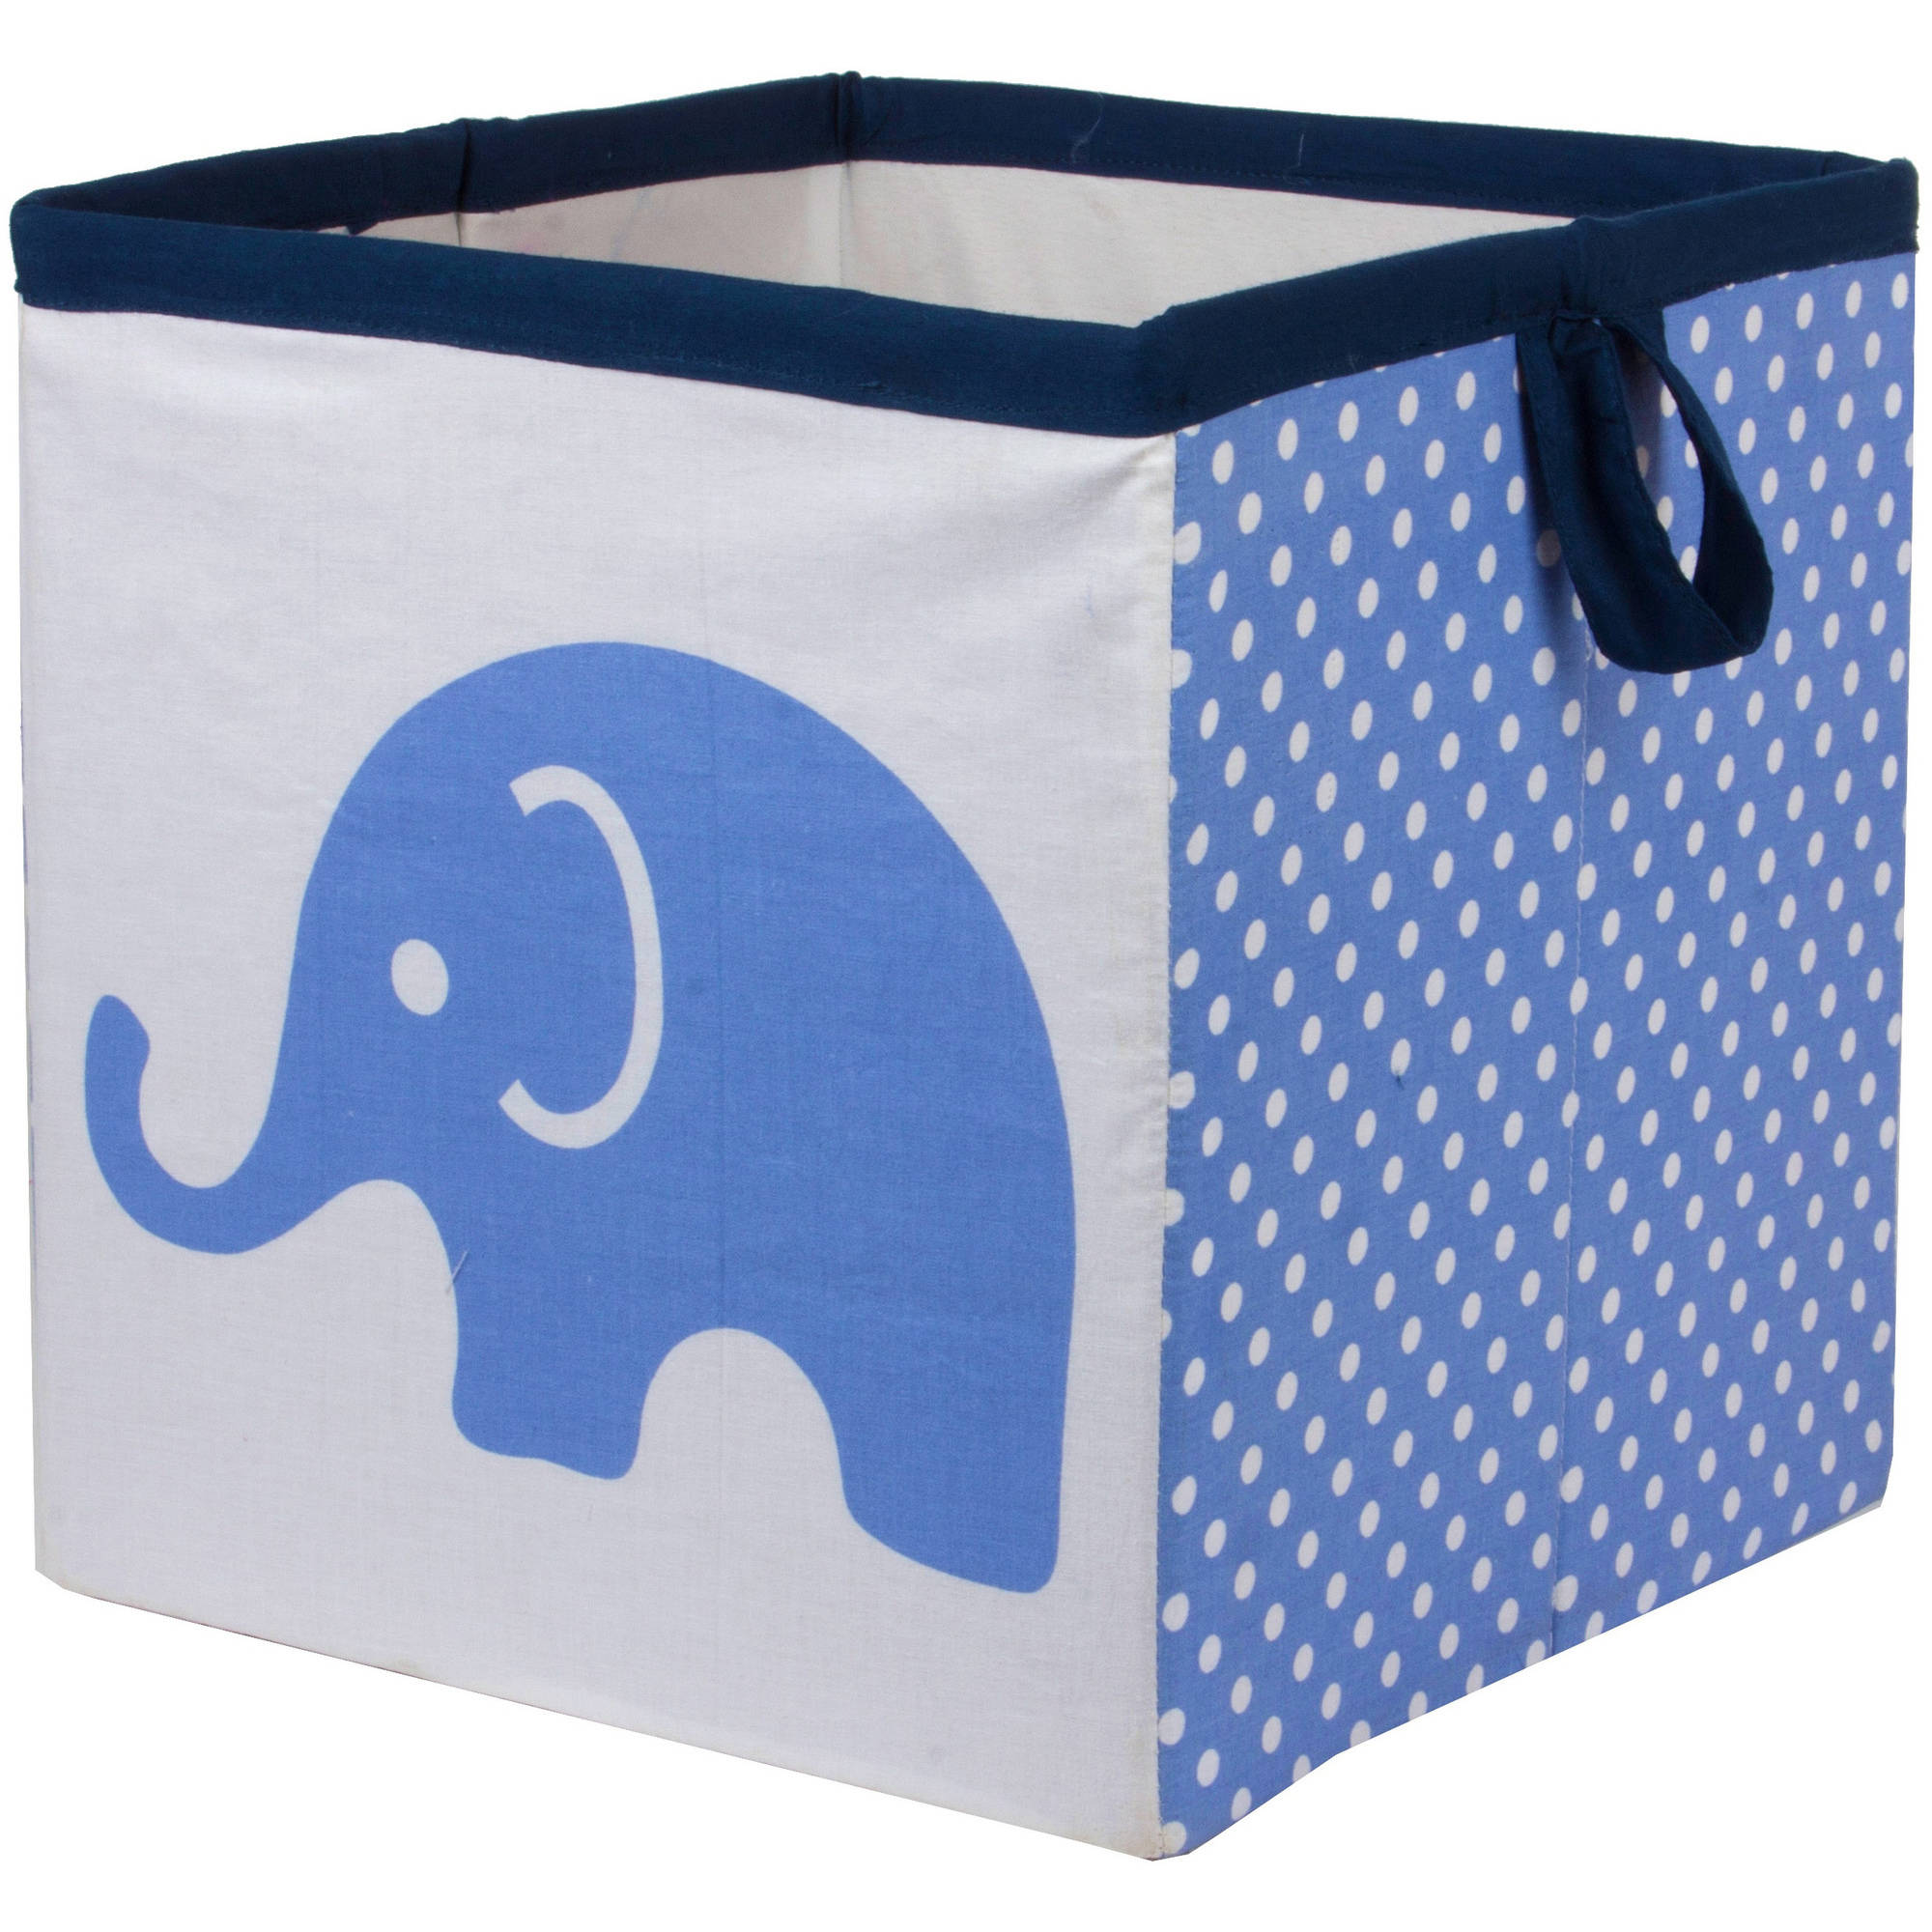 Bacati - Elephants Blue/Gray Cotton Percale Fabric covered Storage, Small Box, 10 L  x 10 W x 10 H inches